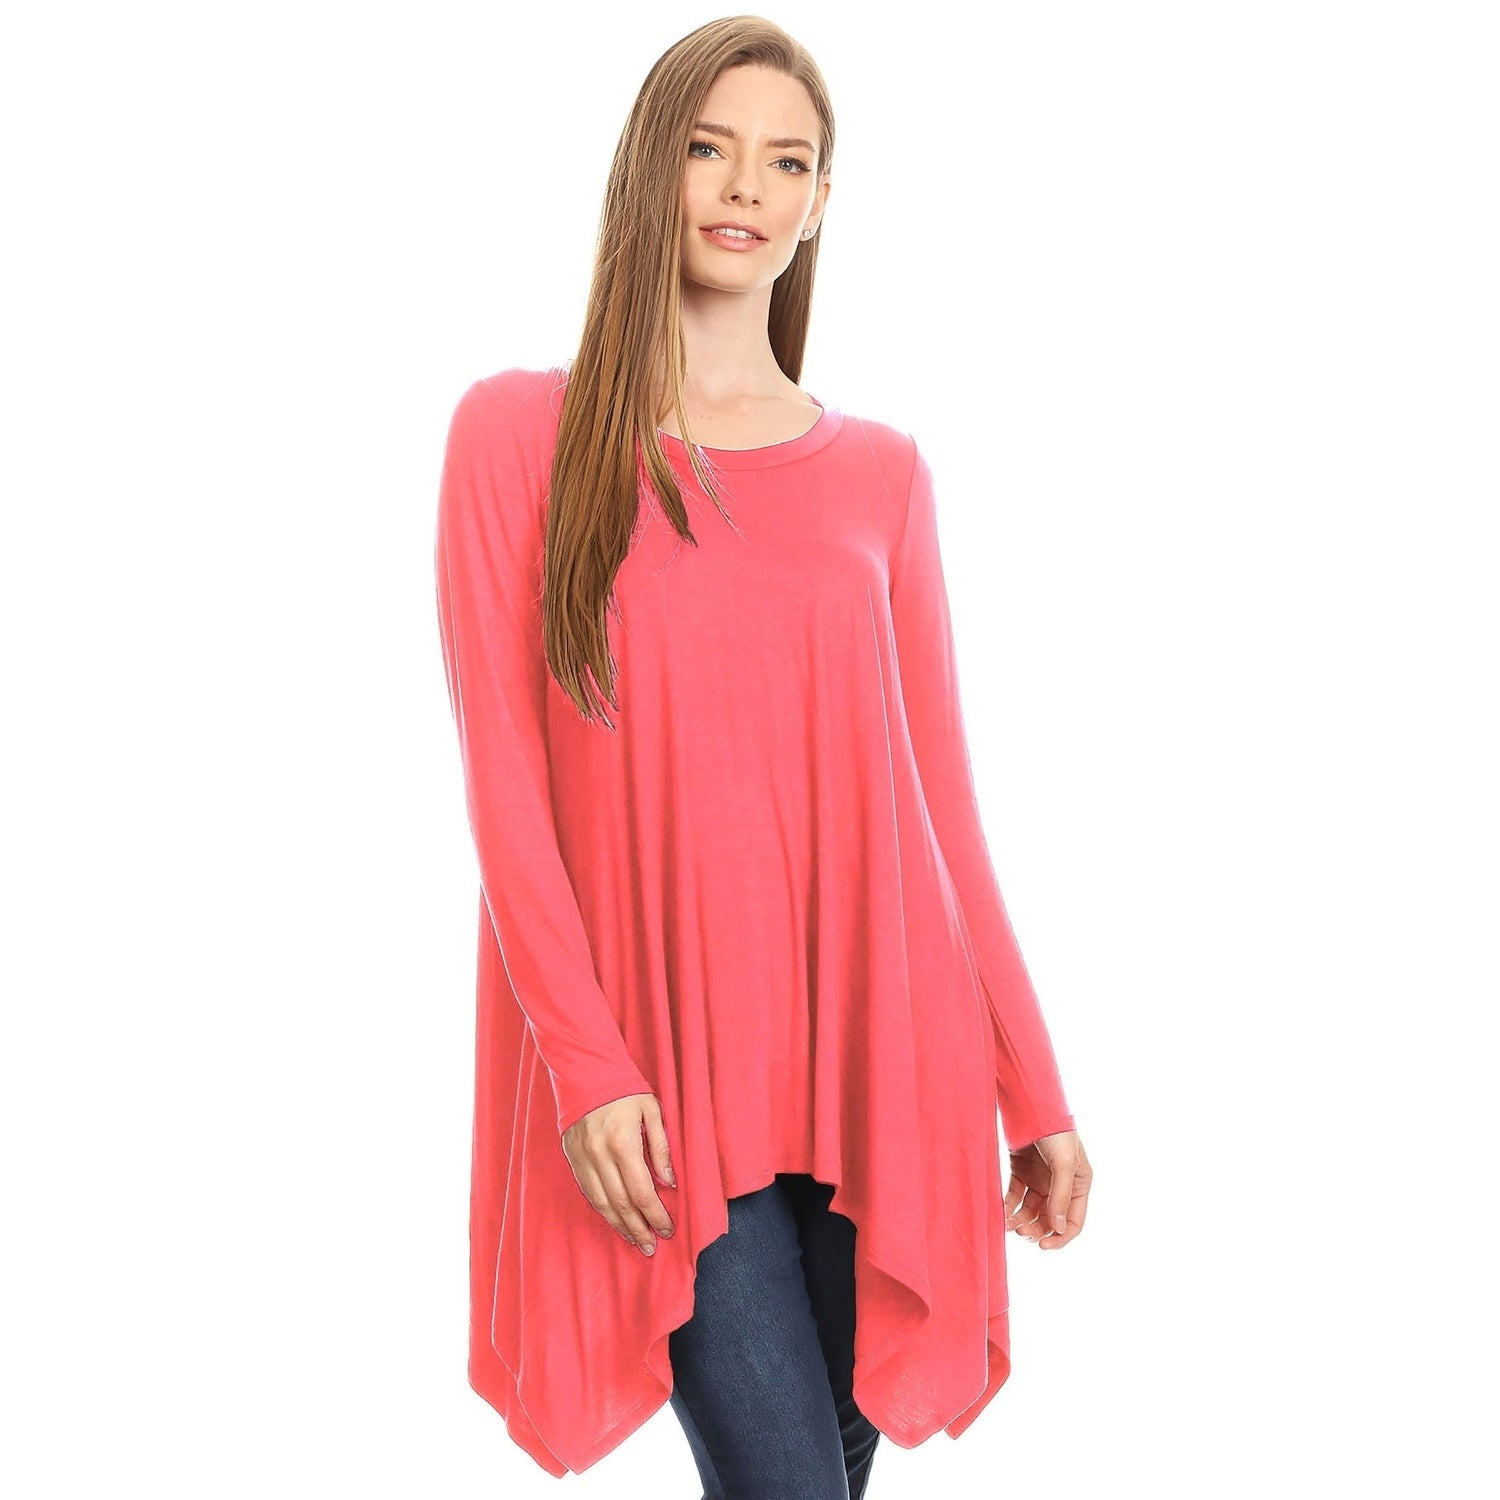 b06676c401 Shop Women s Loose Fit Round Neck Solid Tunic Top - Free Shipping On ...